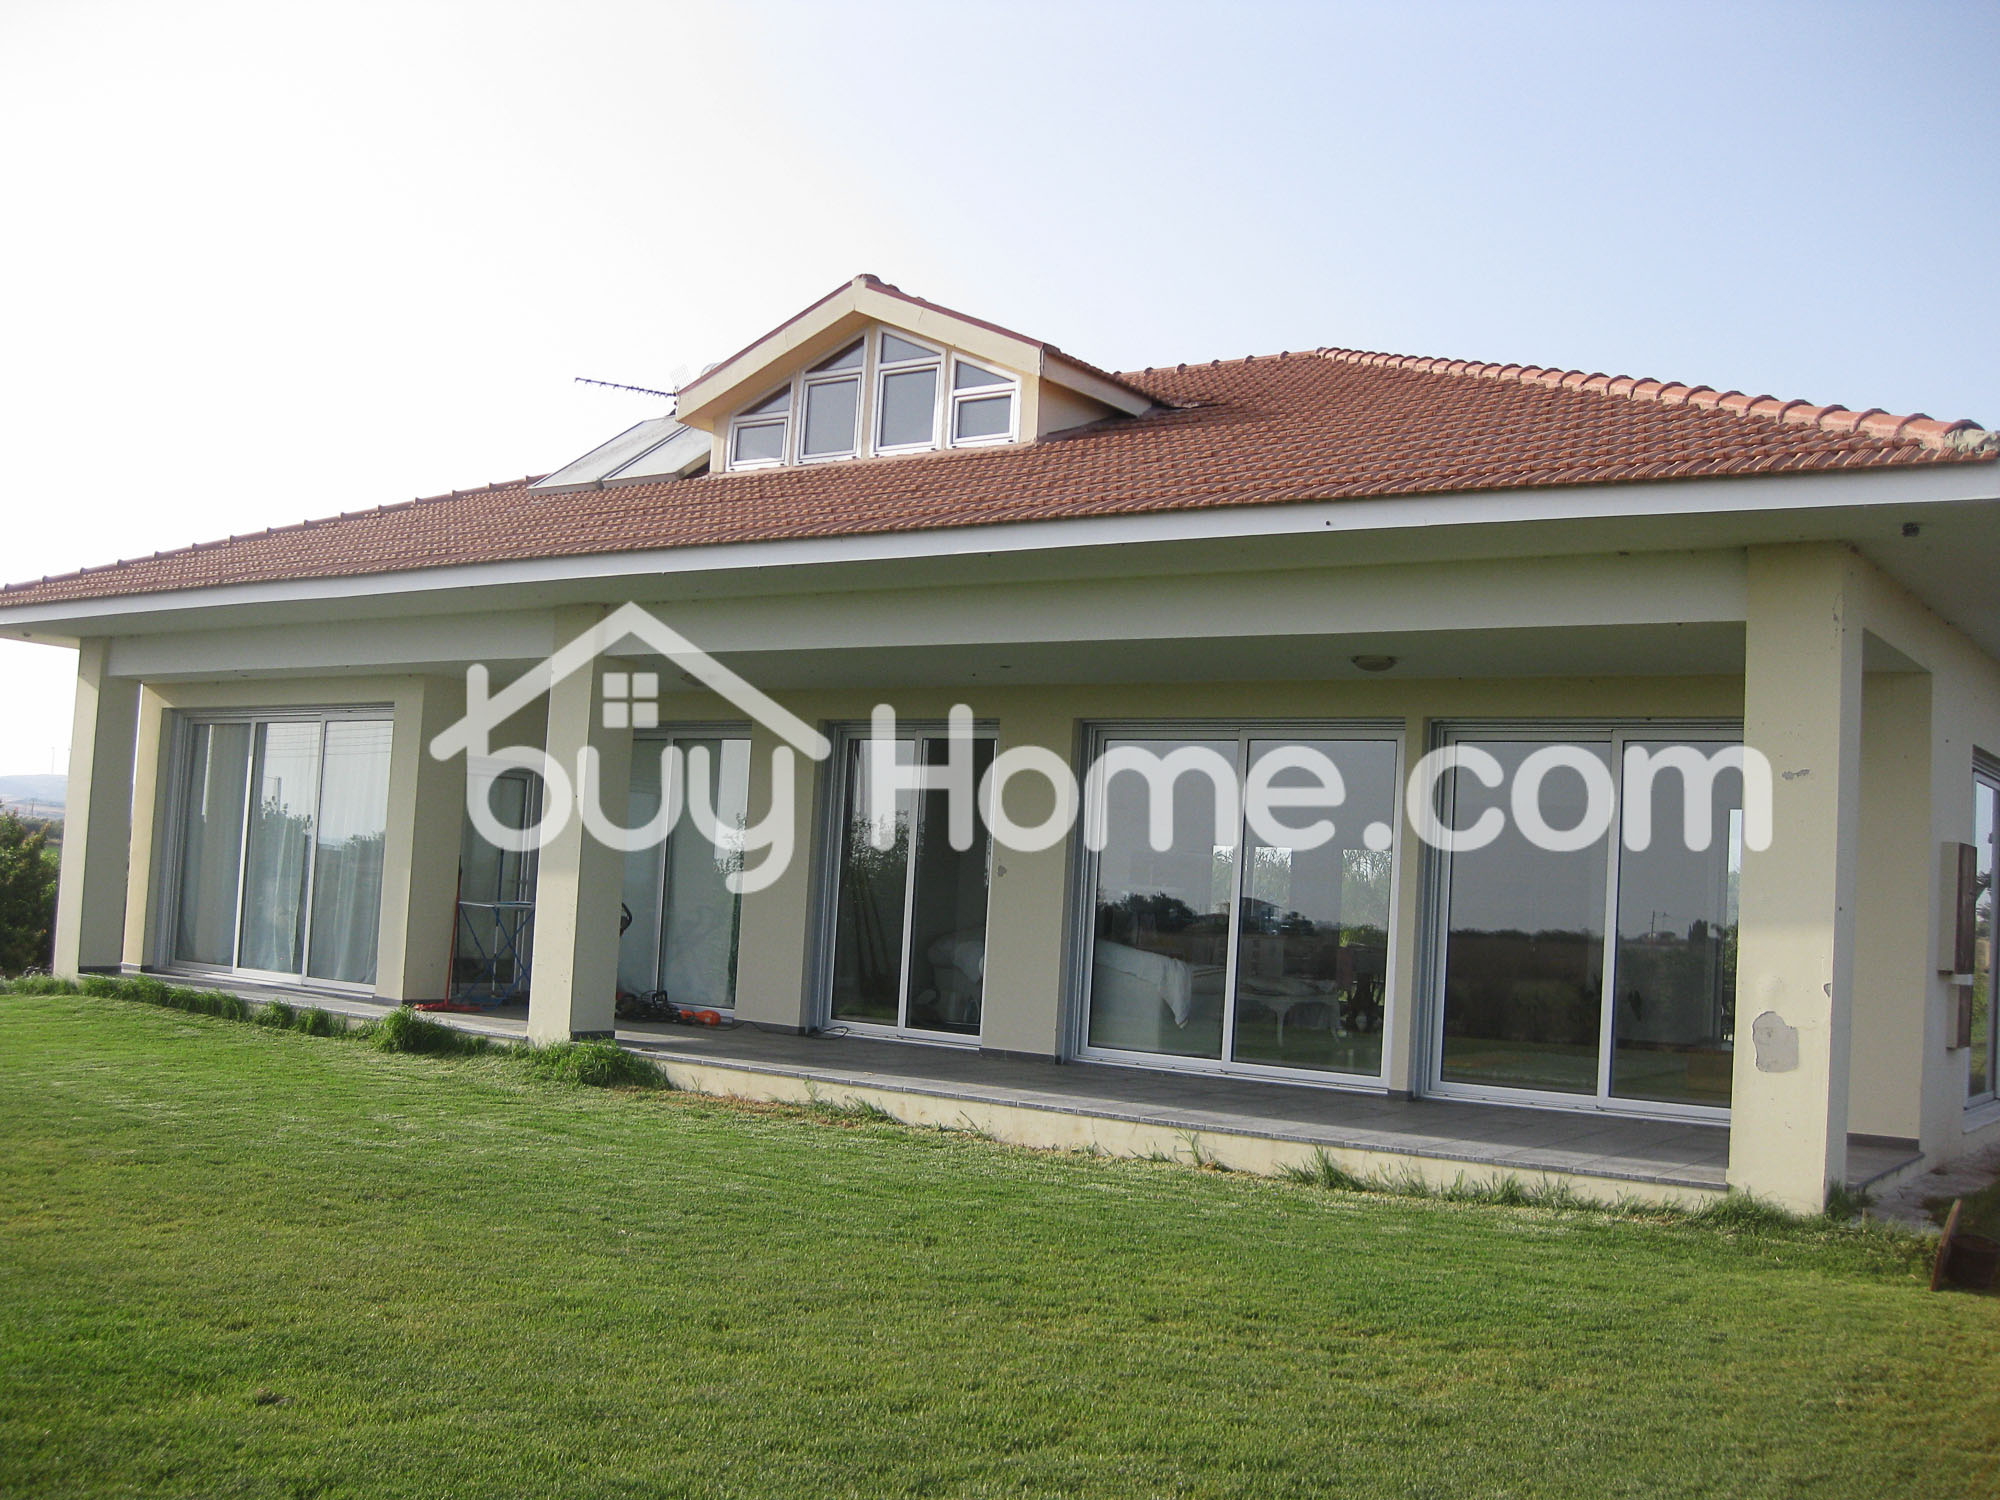 3 Bed Bungalow- Plot 6810 m2 | BuyHome